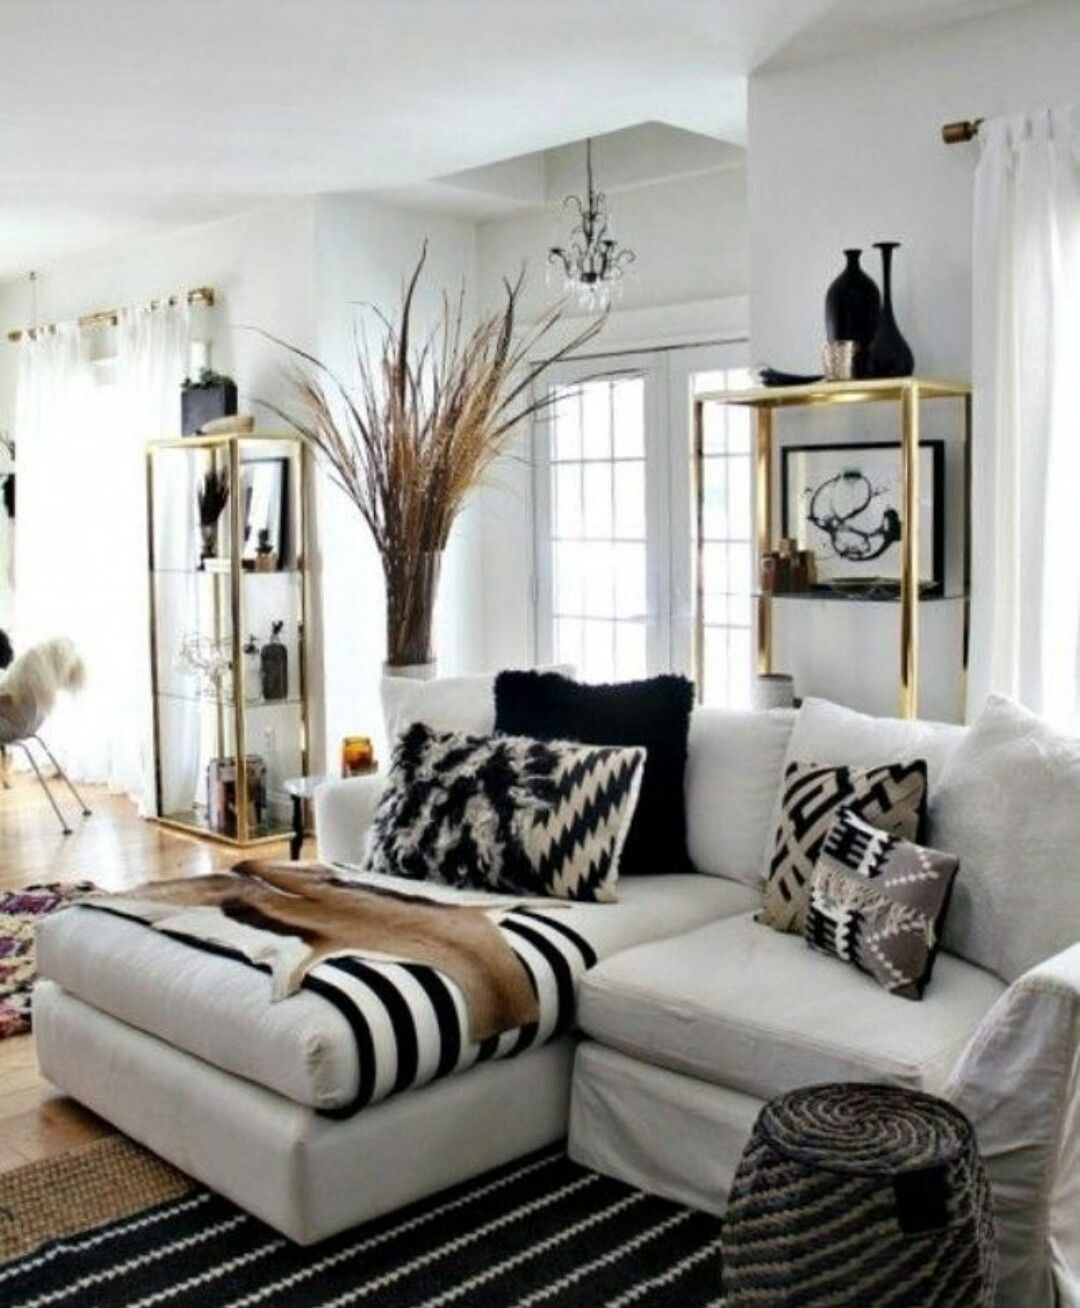 Pin by Rebecca Shawver on Decorating | Pinterest | Living rooms ...